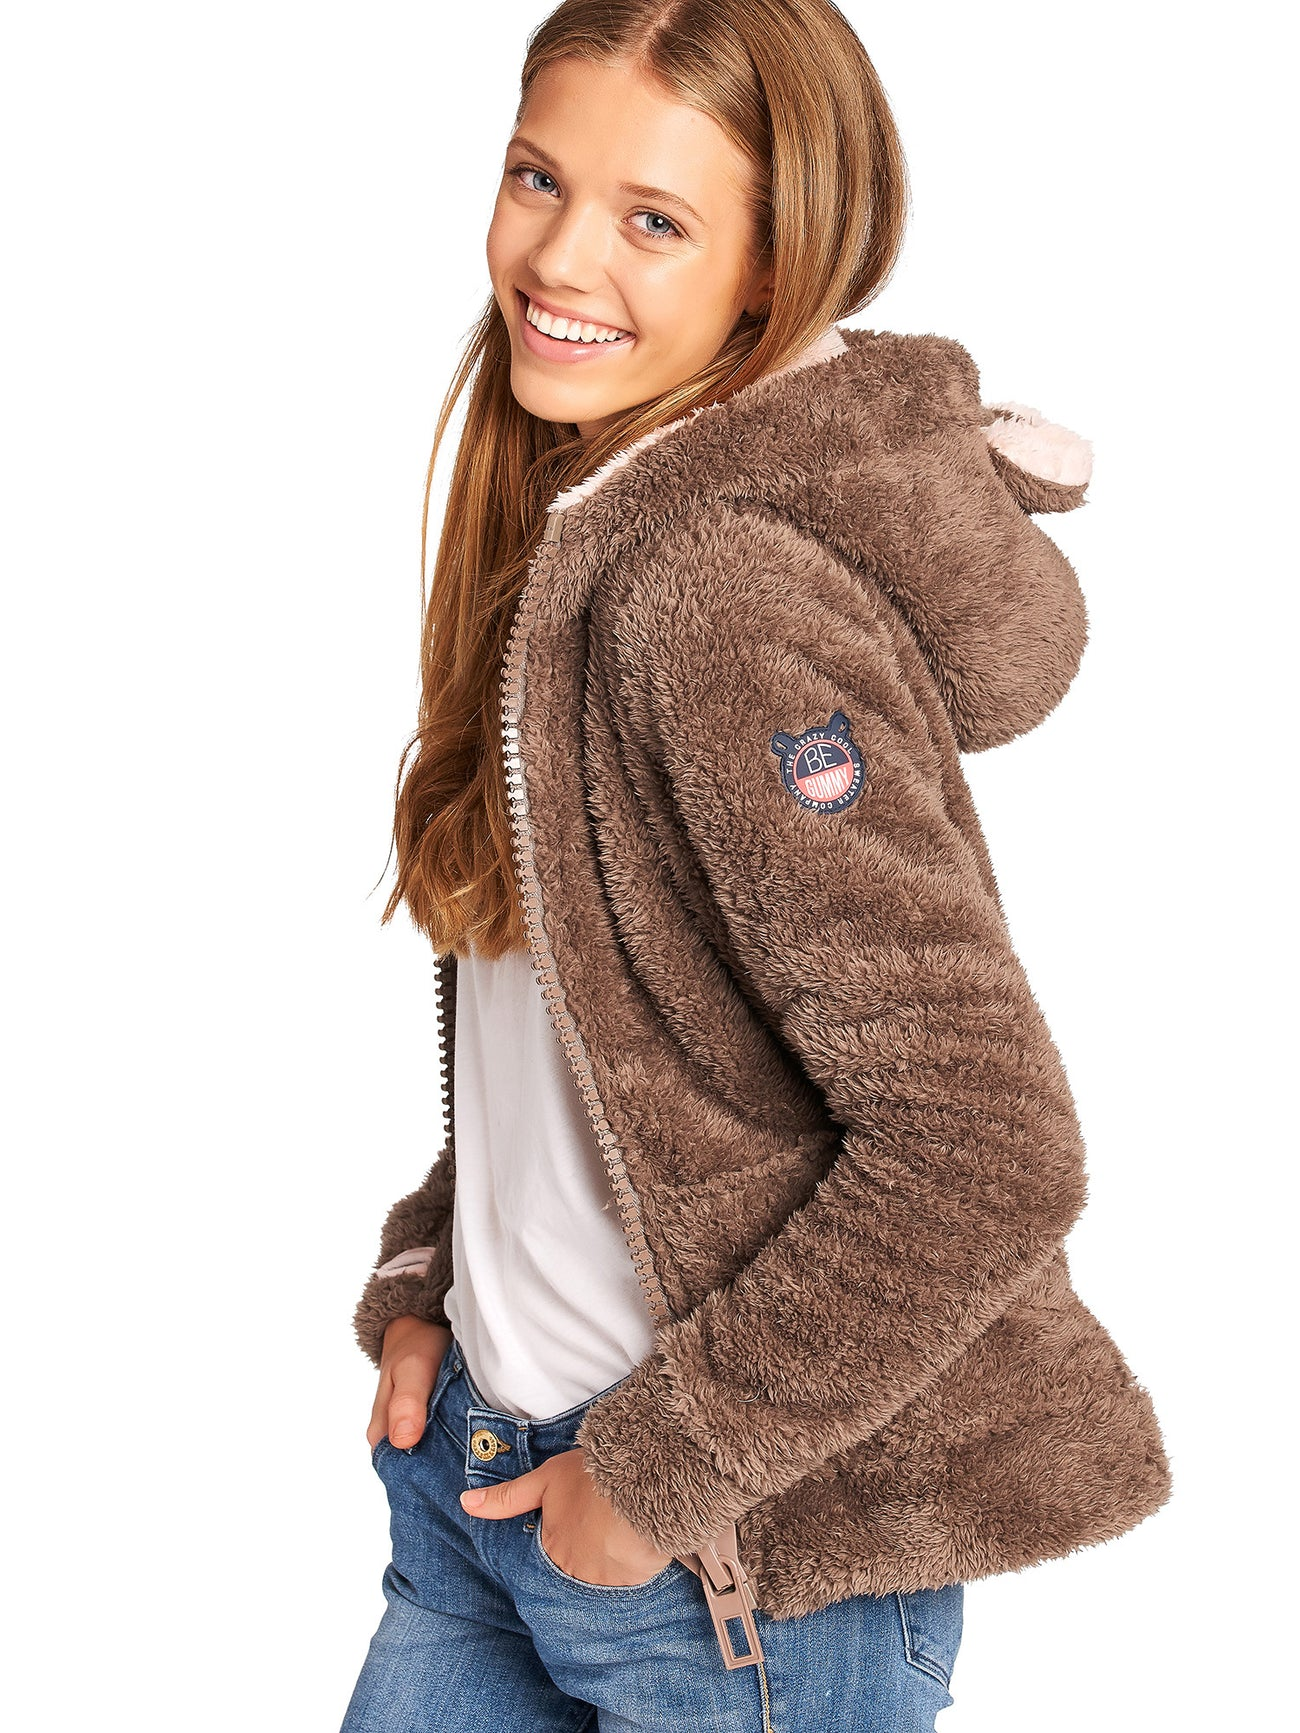 Teddy Brown Soft Furry Sweater